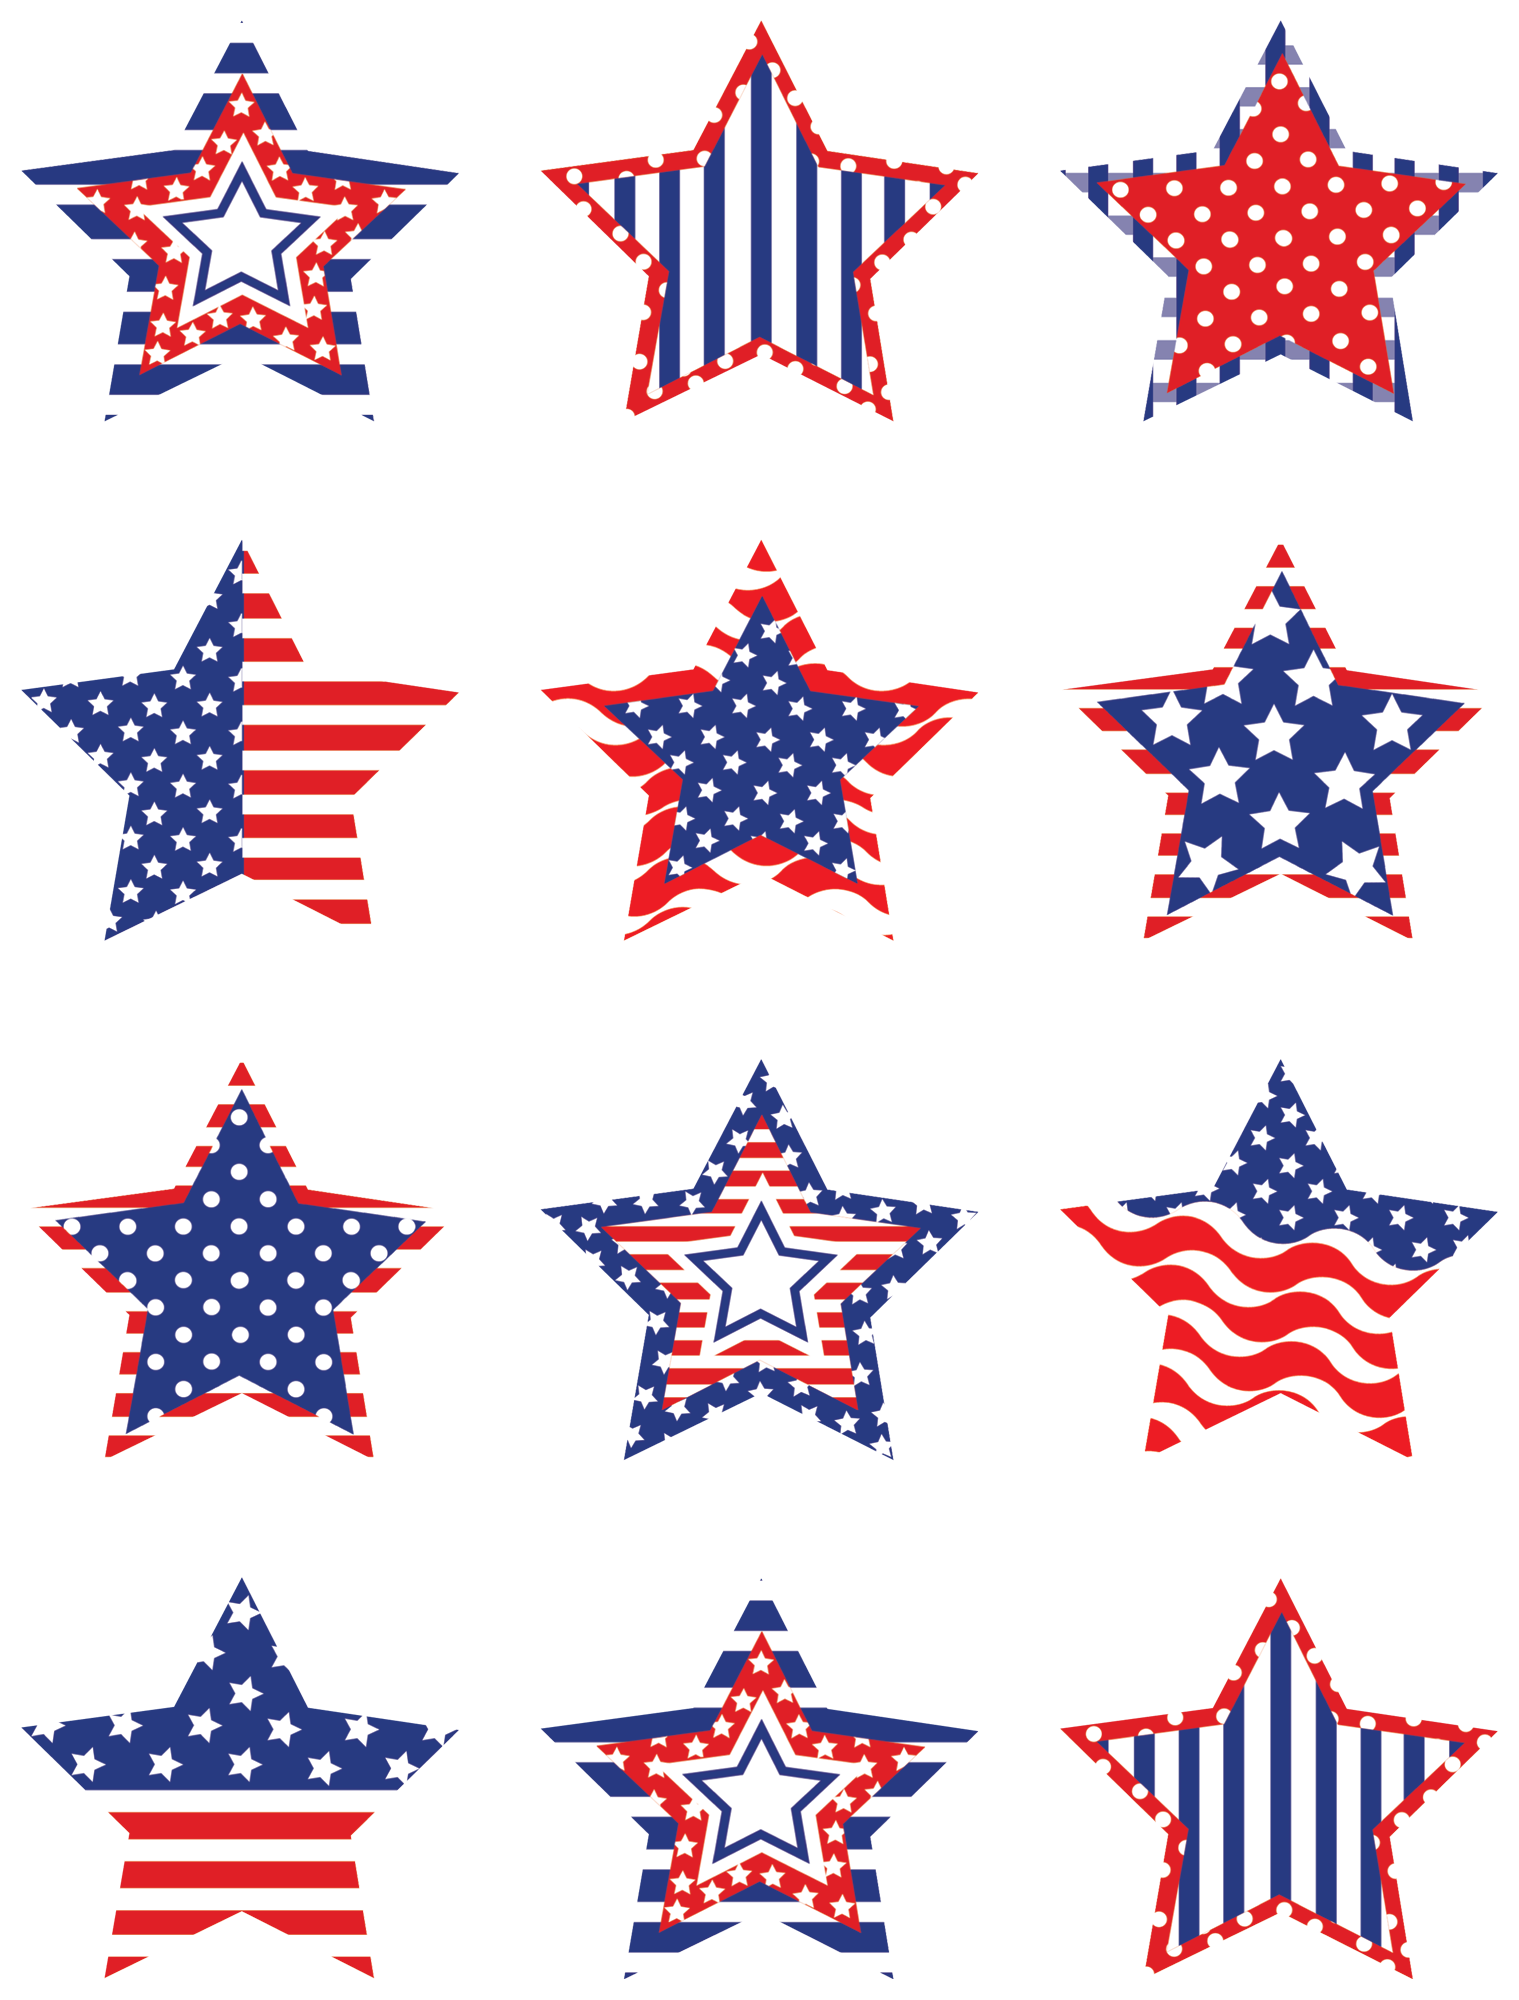 Accent star clipart transparent stock Patriotic Stars Mini Accents | Capt america, Minis and Star transparent stock